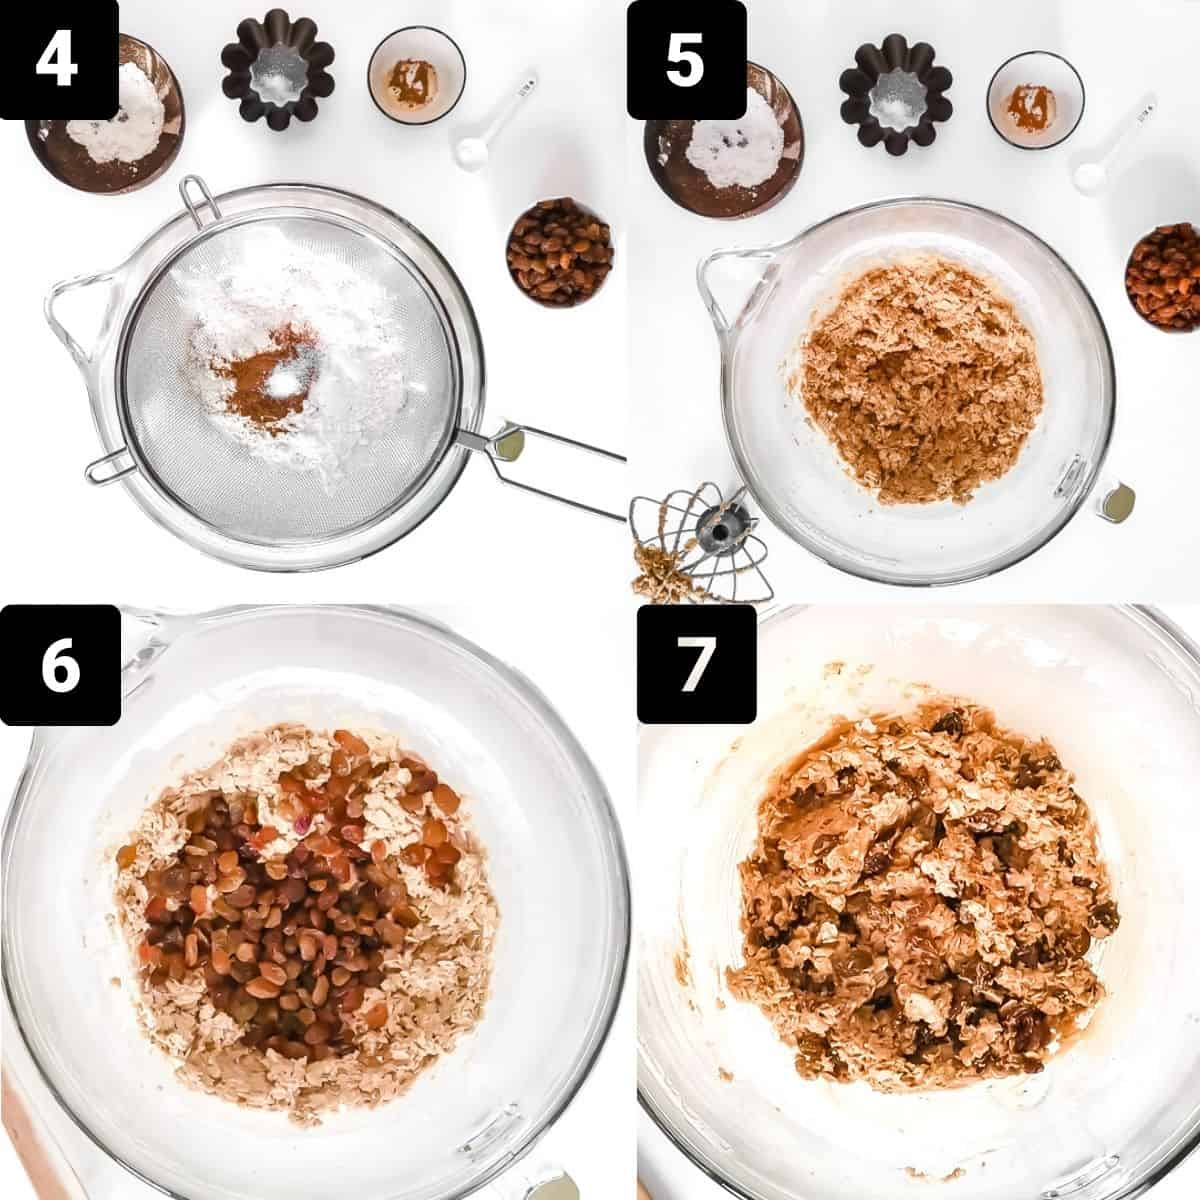 Step by step2 for the chocolate chip cookies